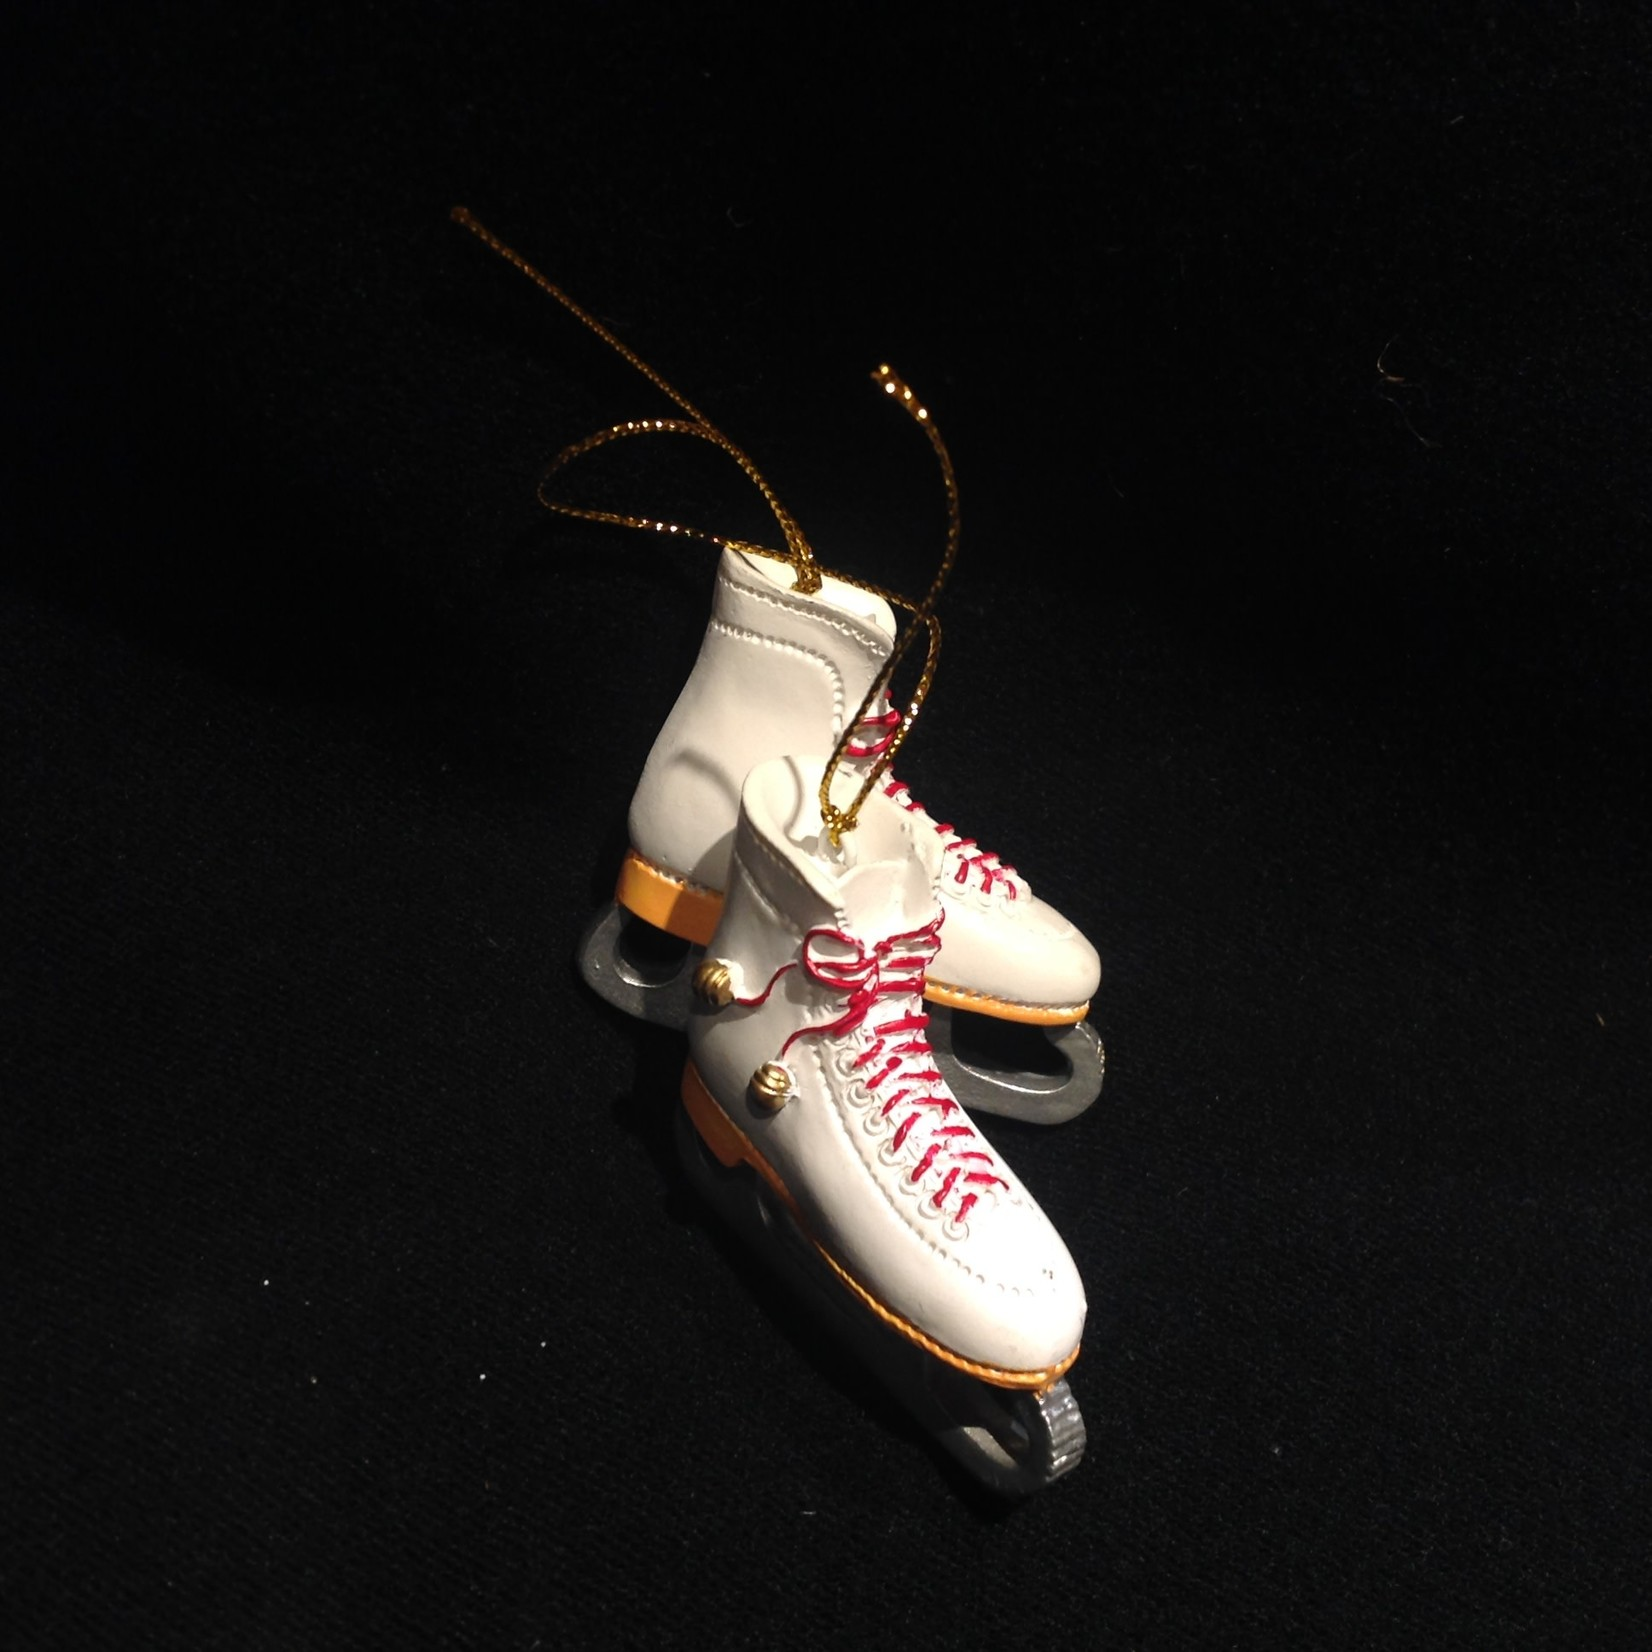 Pair of Figure Skates Orn